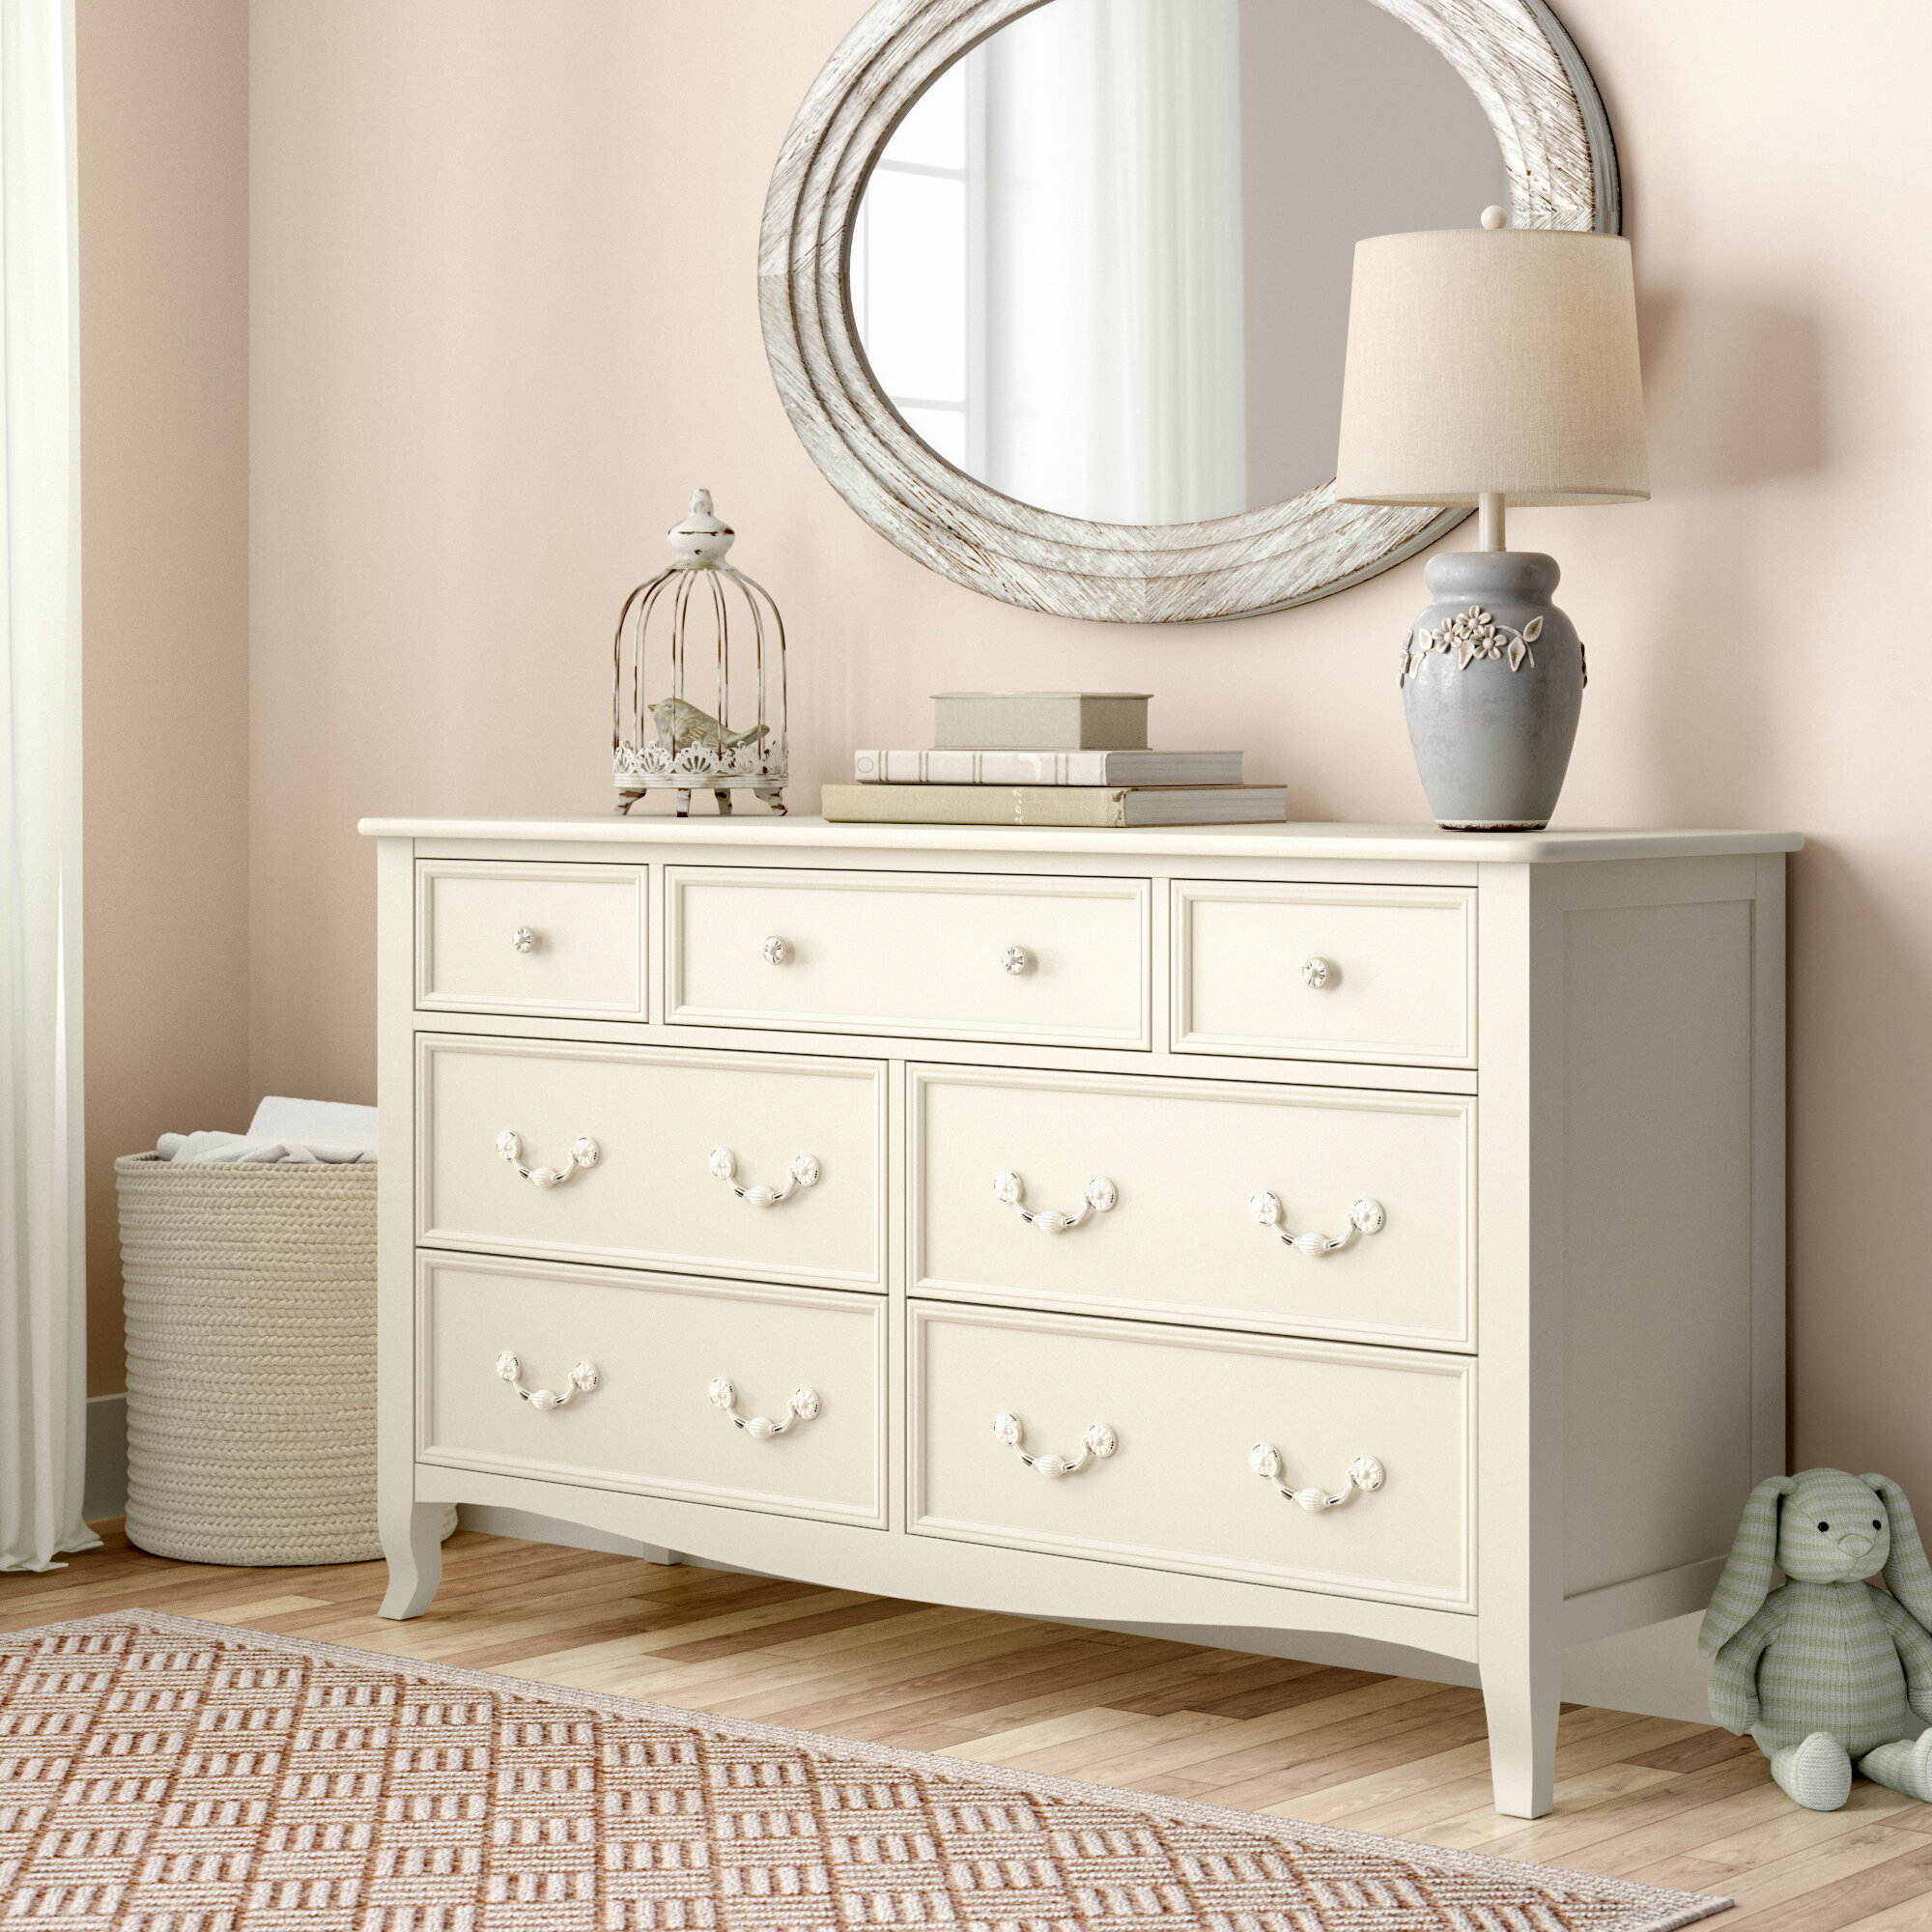 Lilia French Inspired 7 Drawer White Wood Double Dresser with Mirror